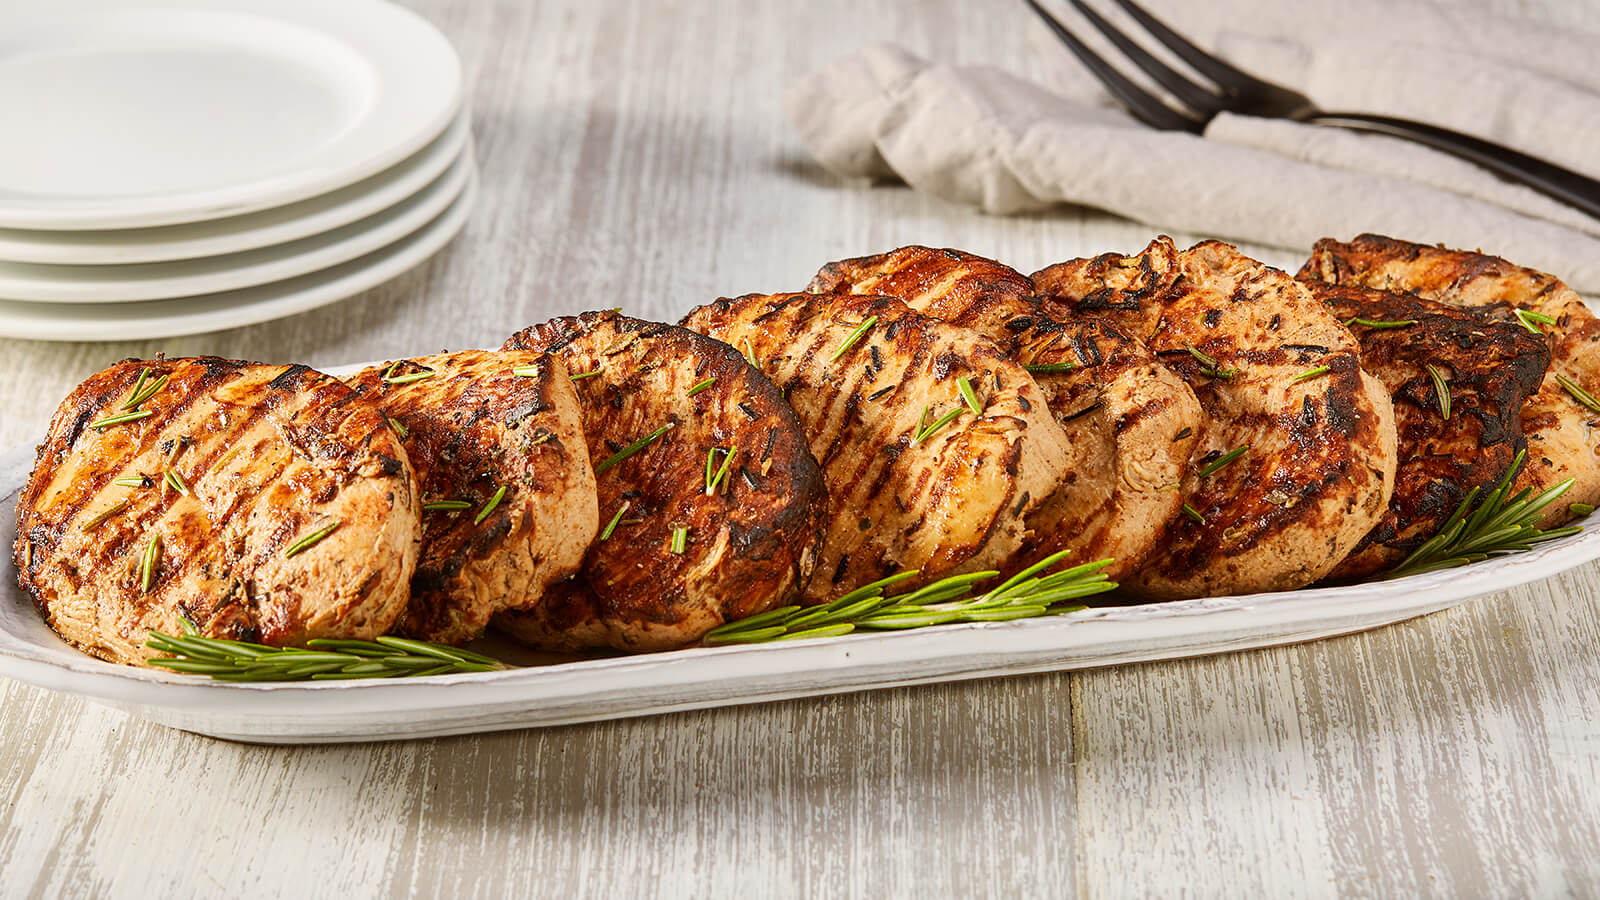 Balsamic Rosemary Grilled Chicken